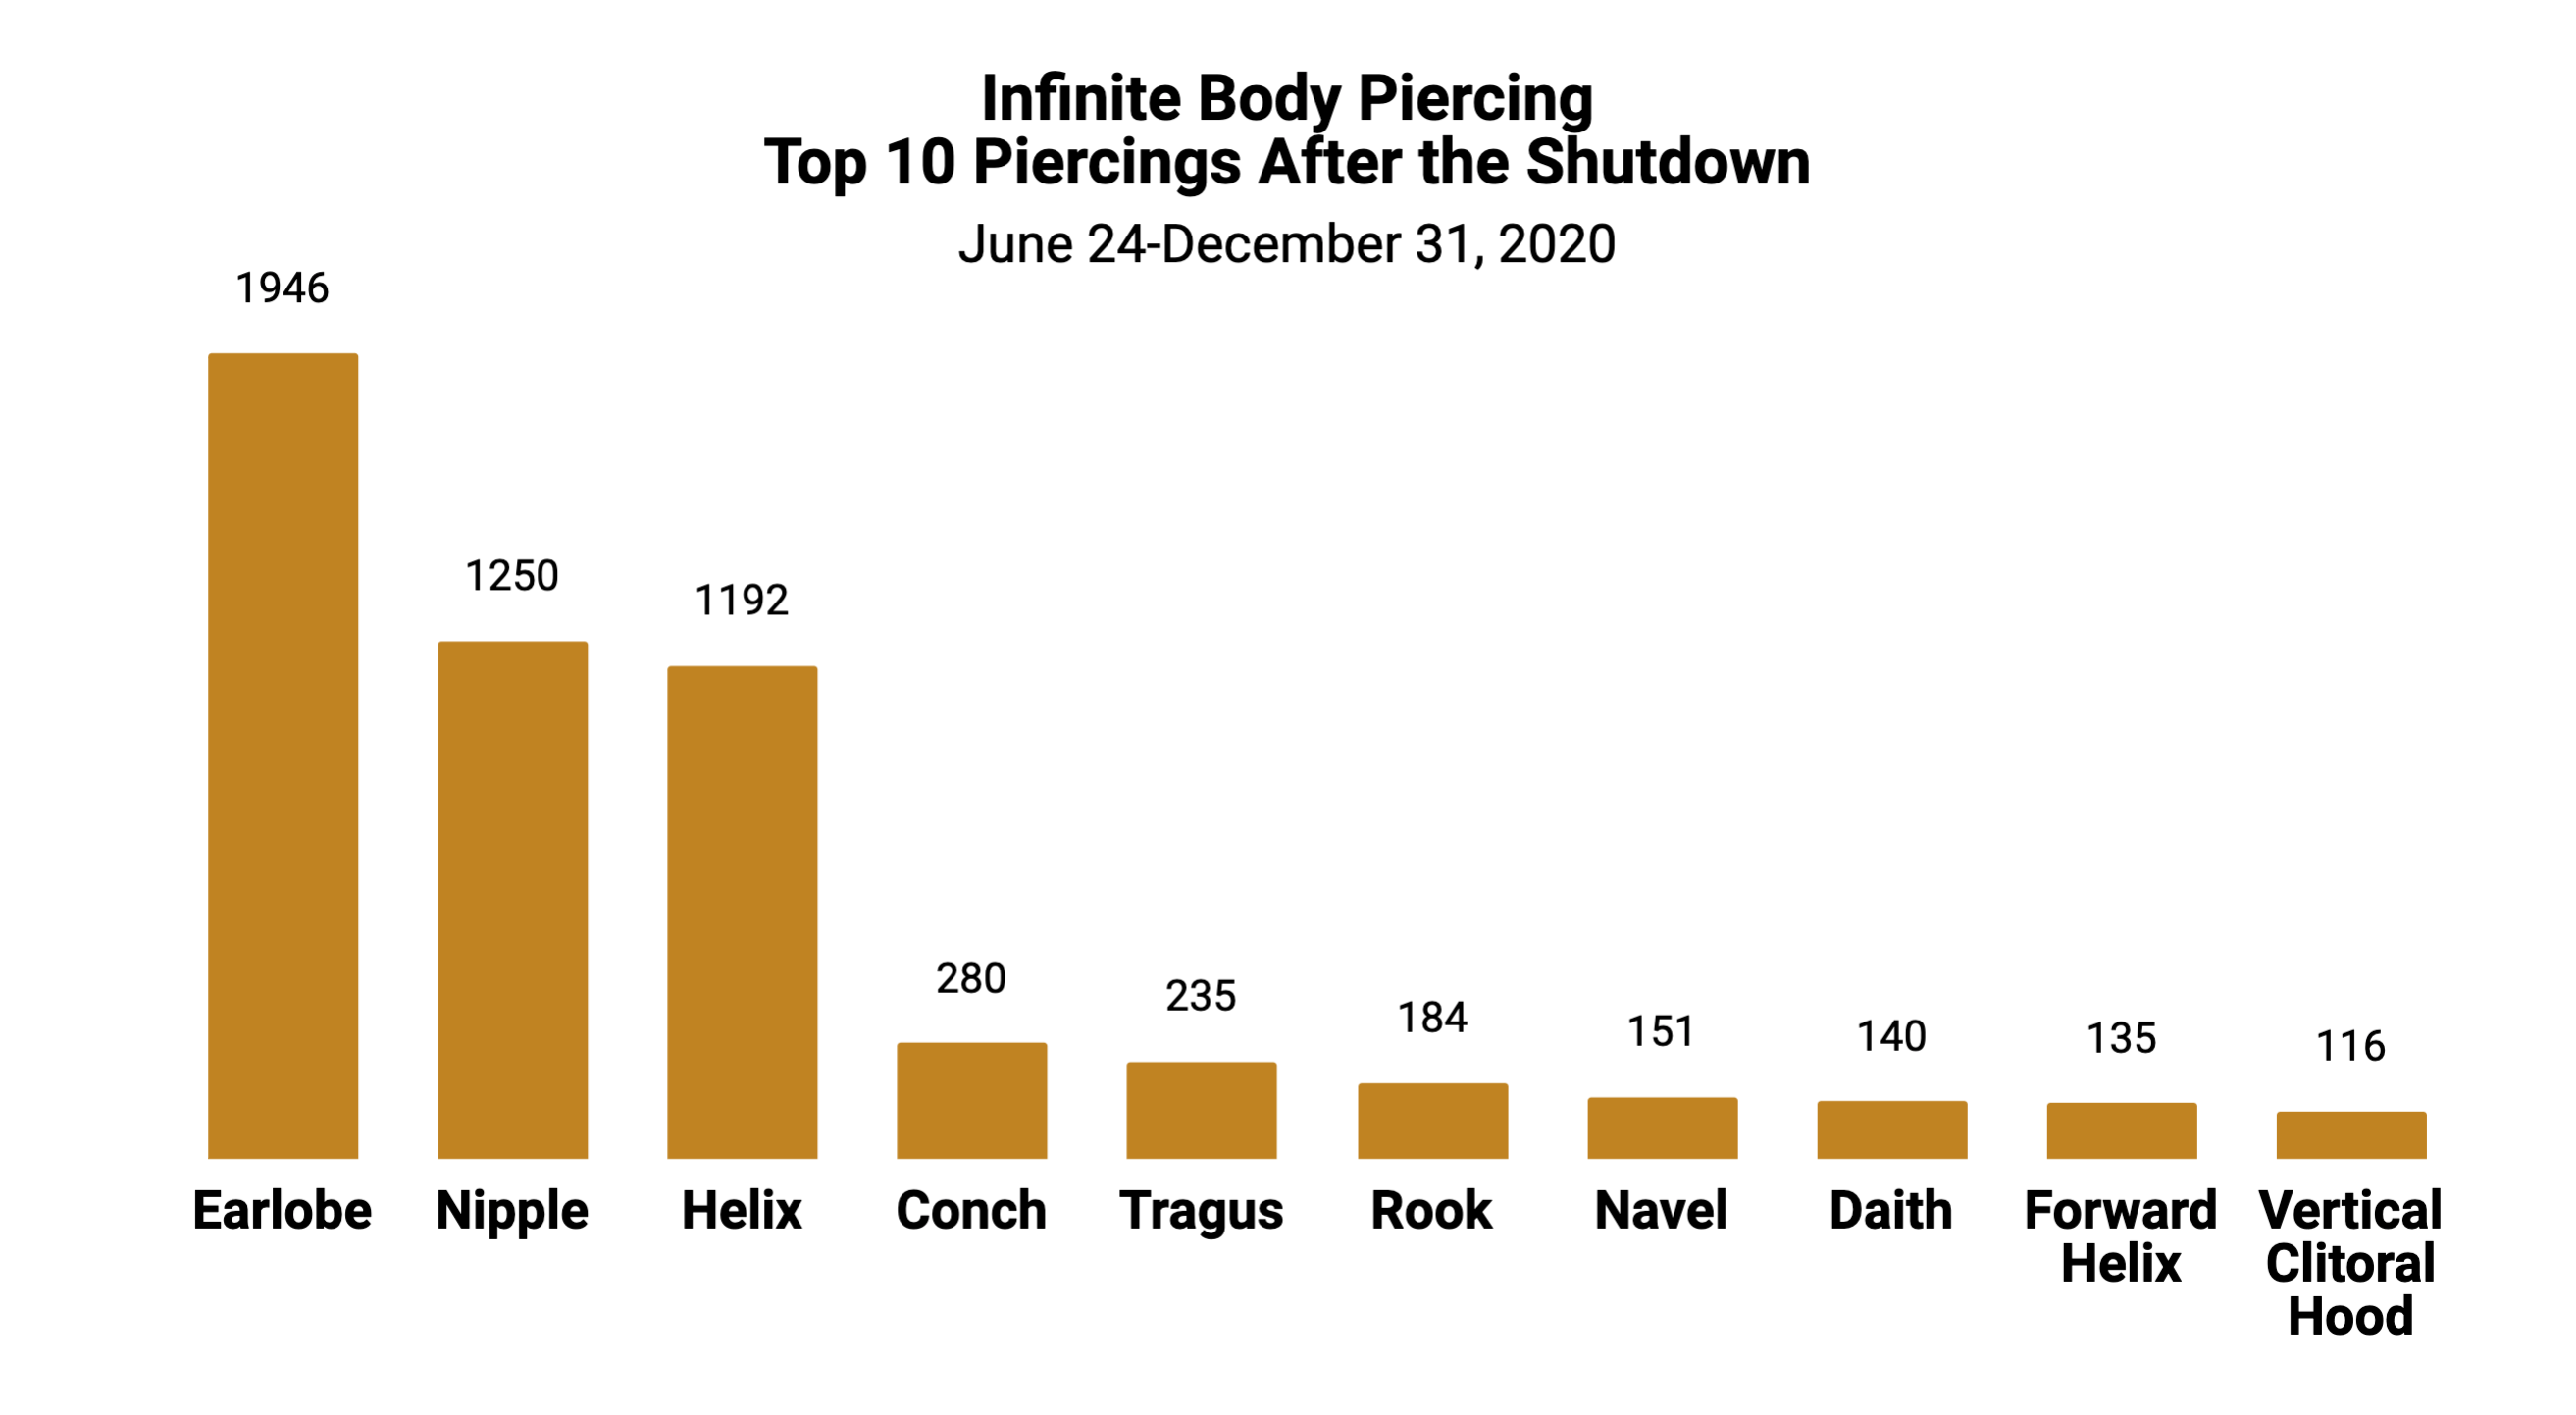 2020 Top 10 Piercings After the Shutdown